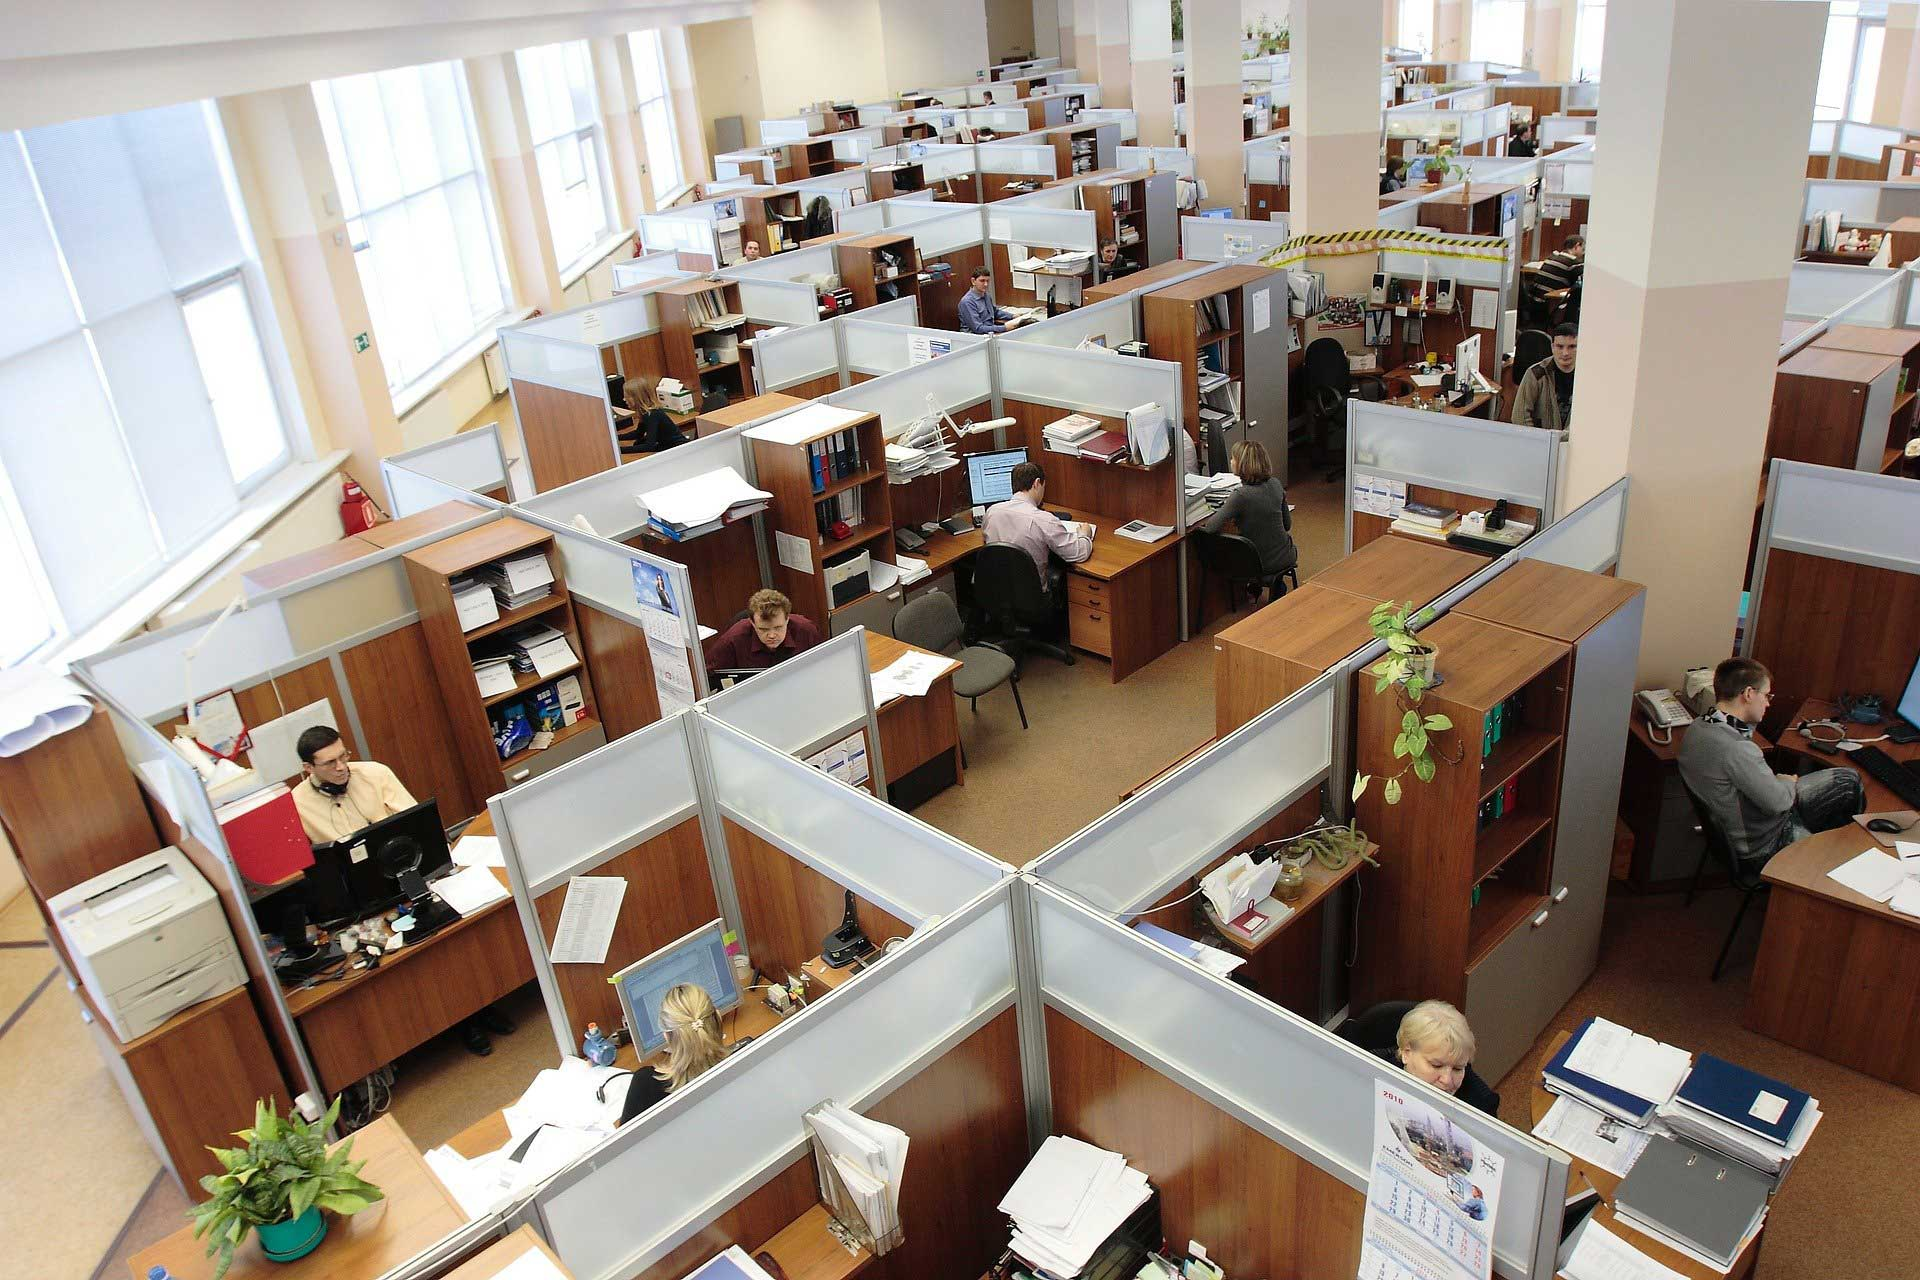 Best Workers' Compensation Insurance Companies